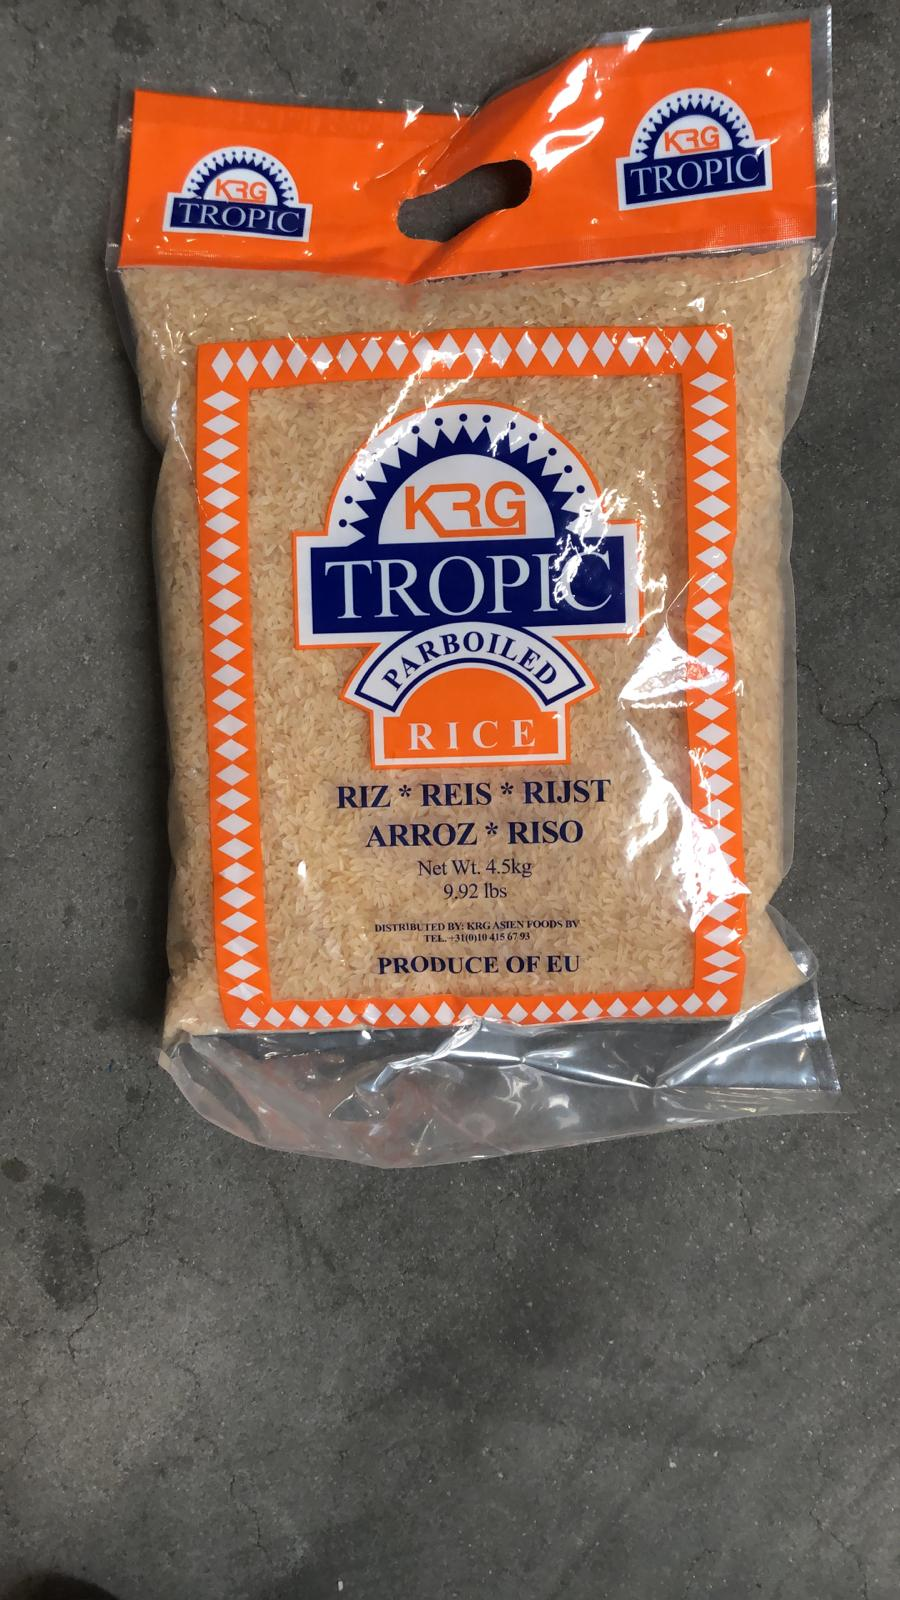 Tropic Parboiled Rice ( 4,5 kg. ) Image